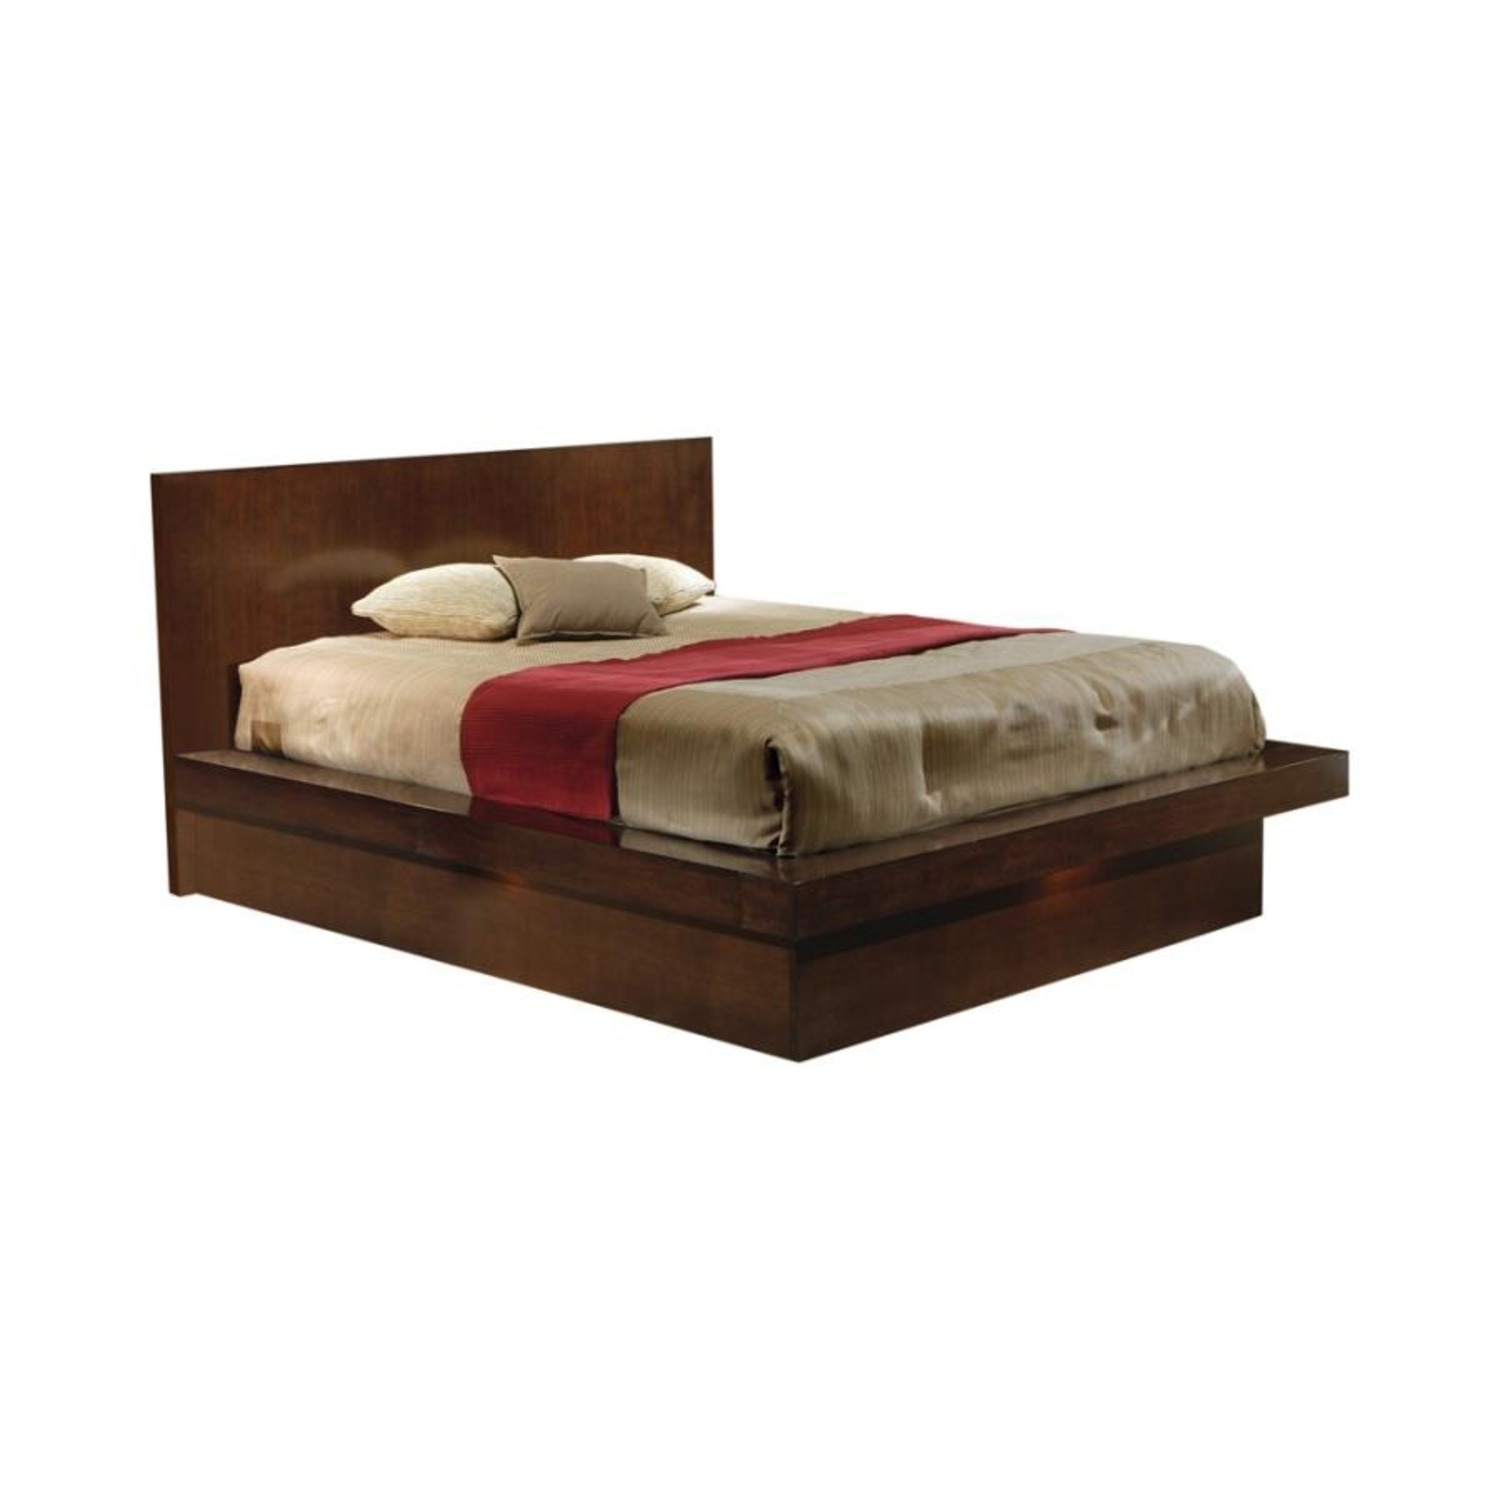 King Bed In Rich Cappuccino Finish - image-0